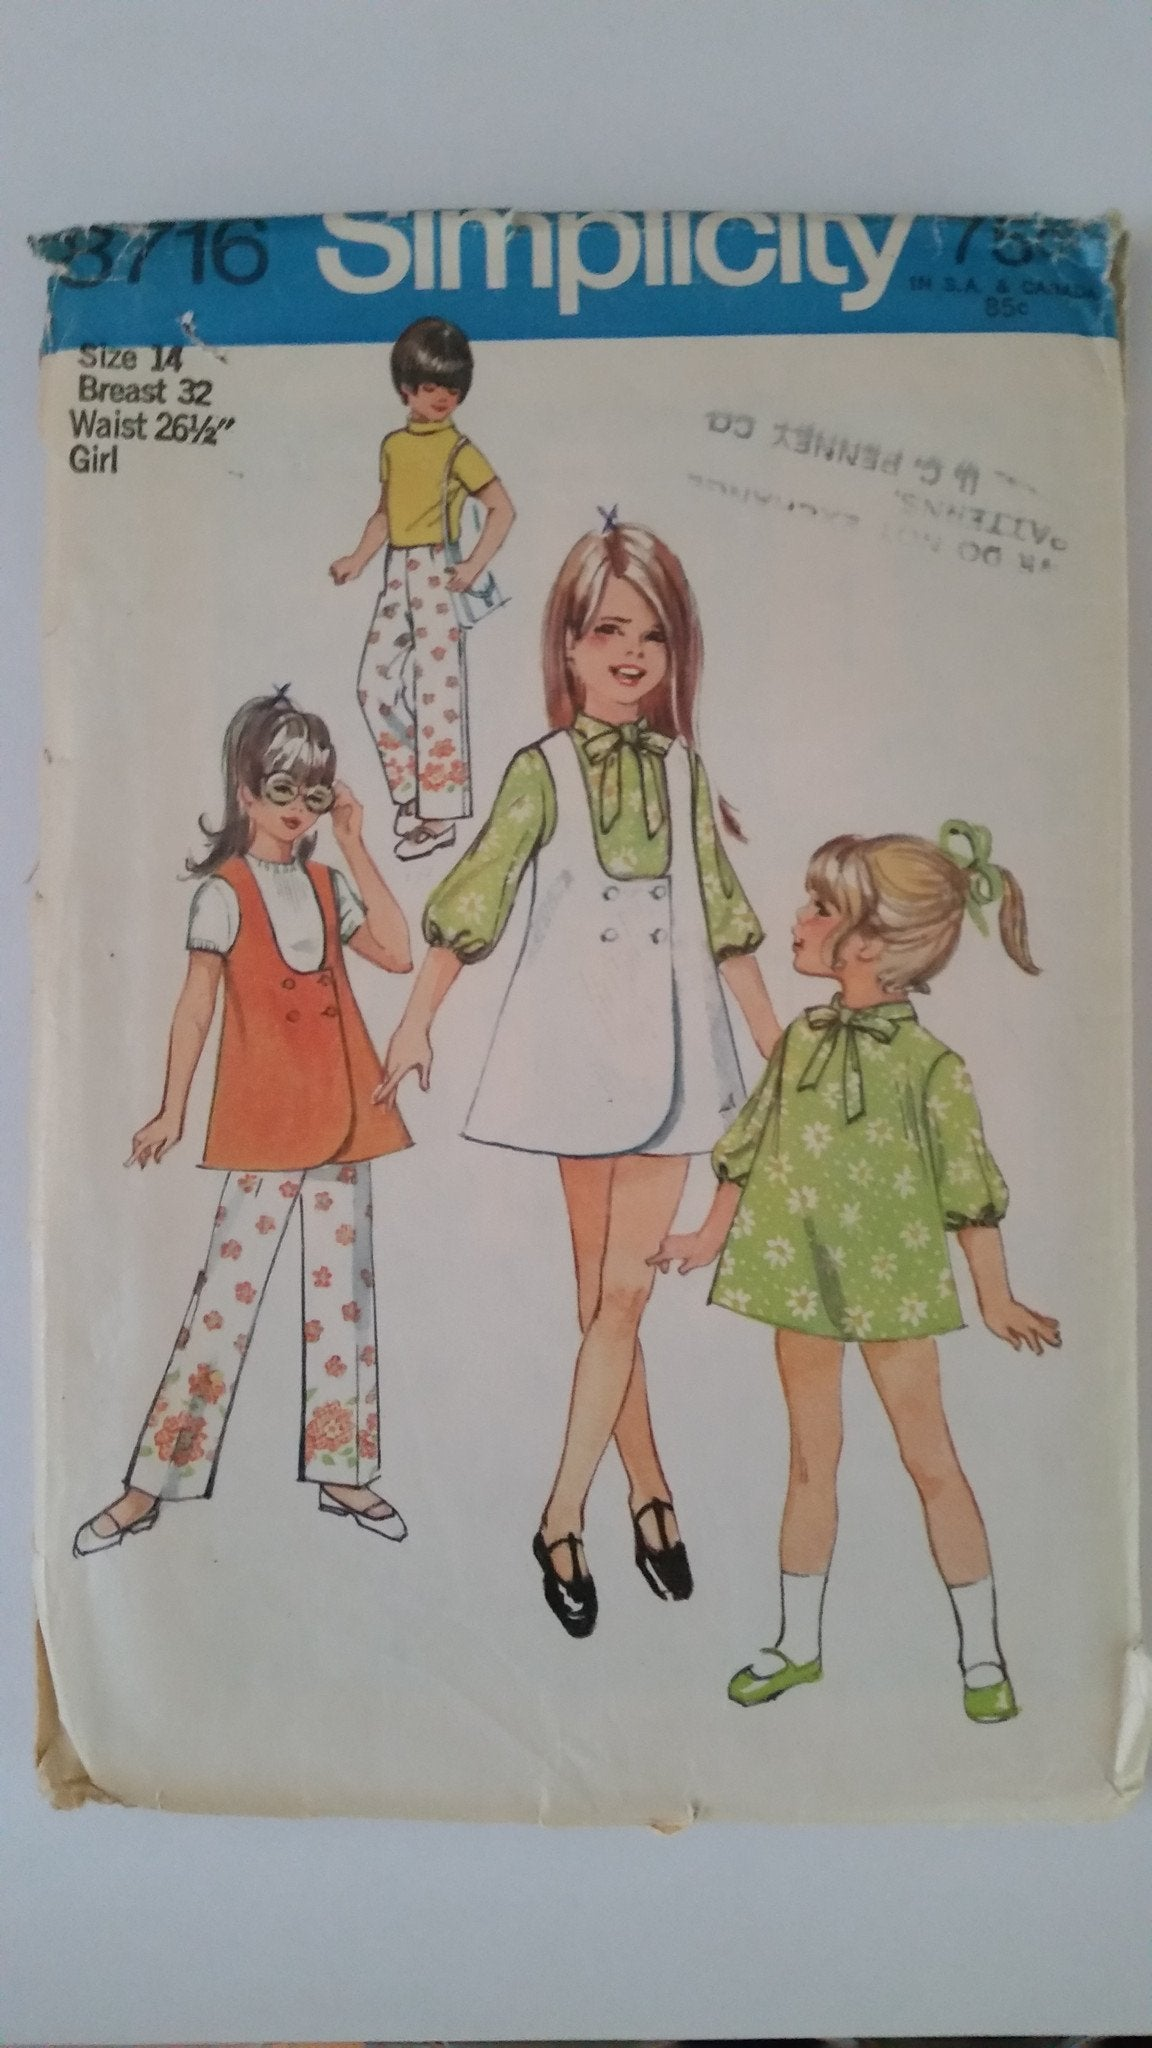 Simplicity 8716 Vintage Sewing Pattern Girls Jumper Tunic Dress Pants - VintageStitching - Vintage Sewing Patterns